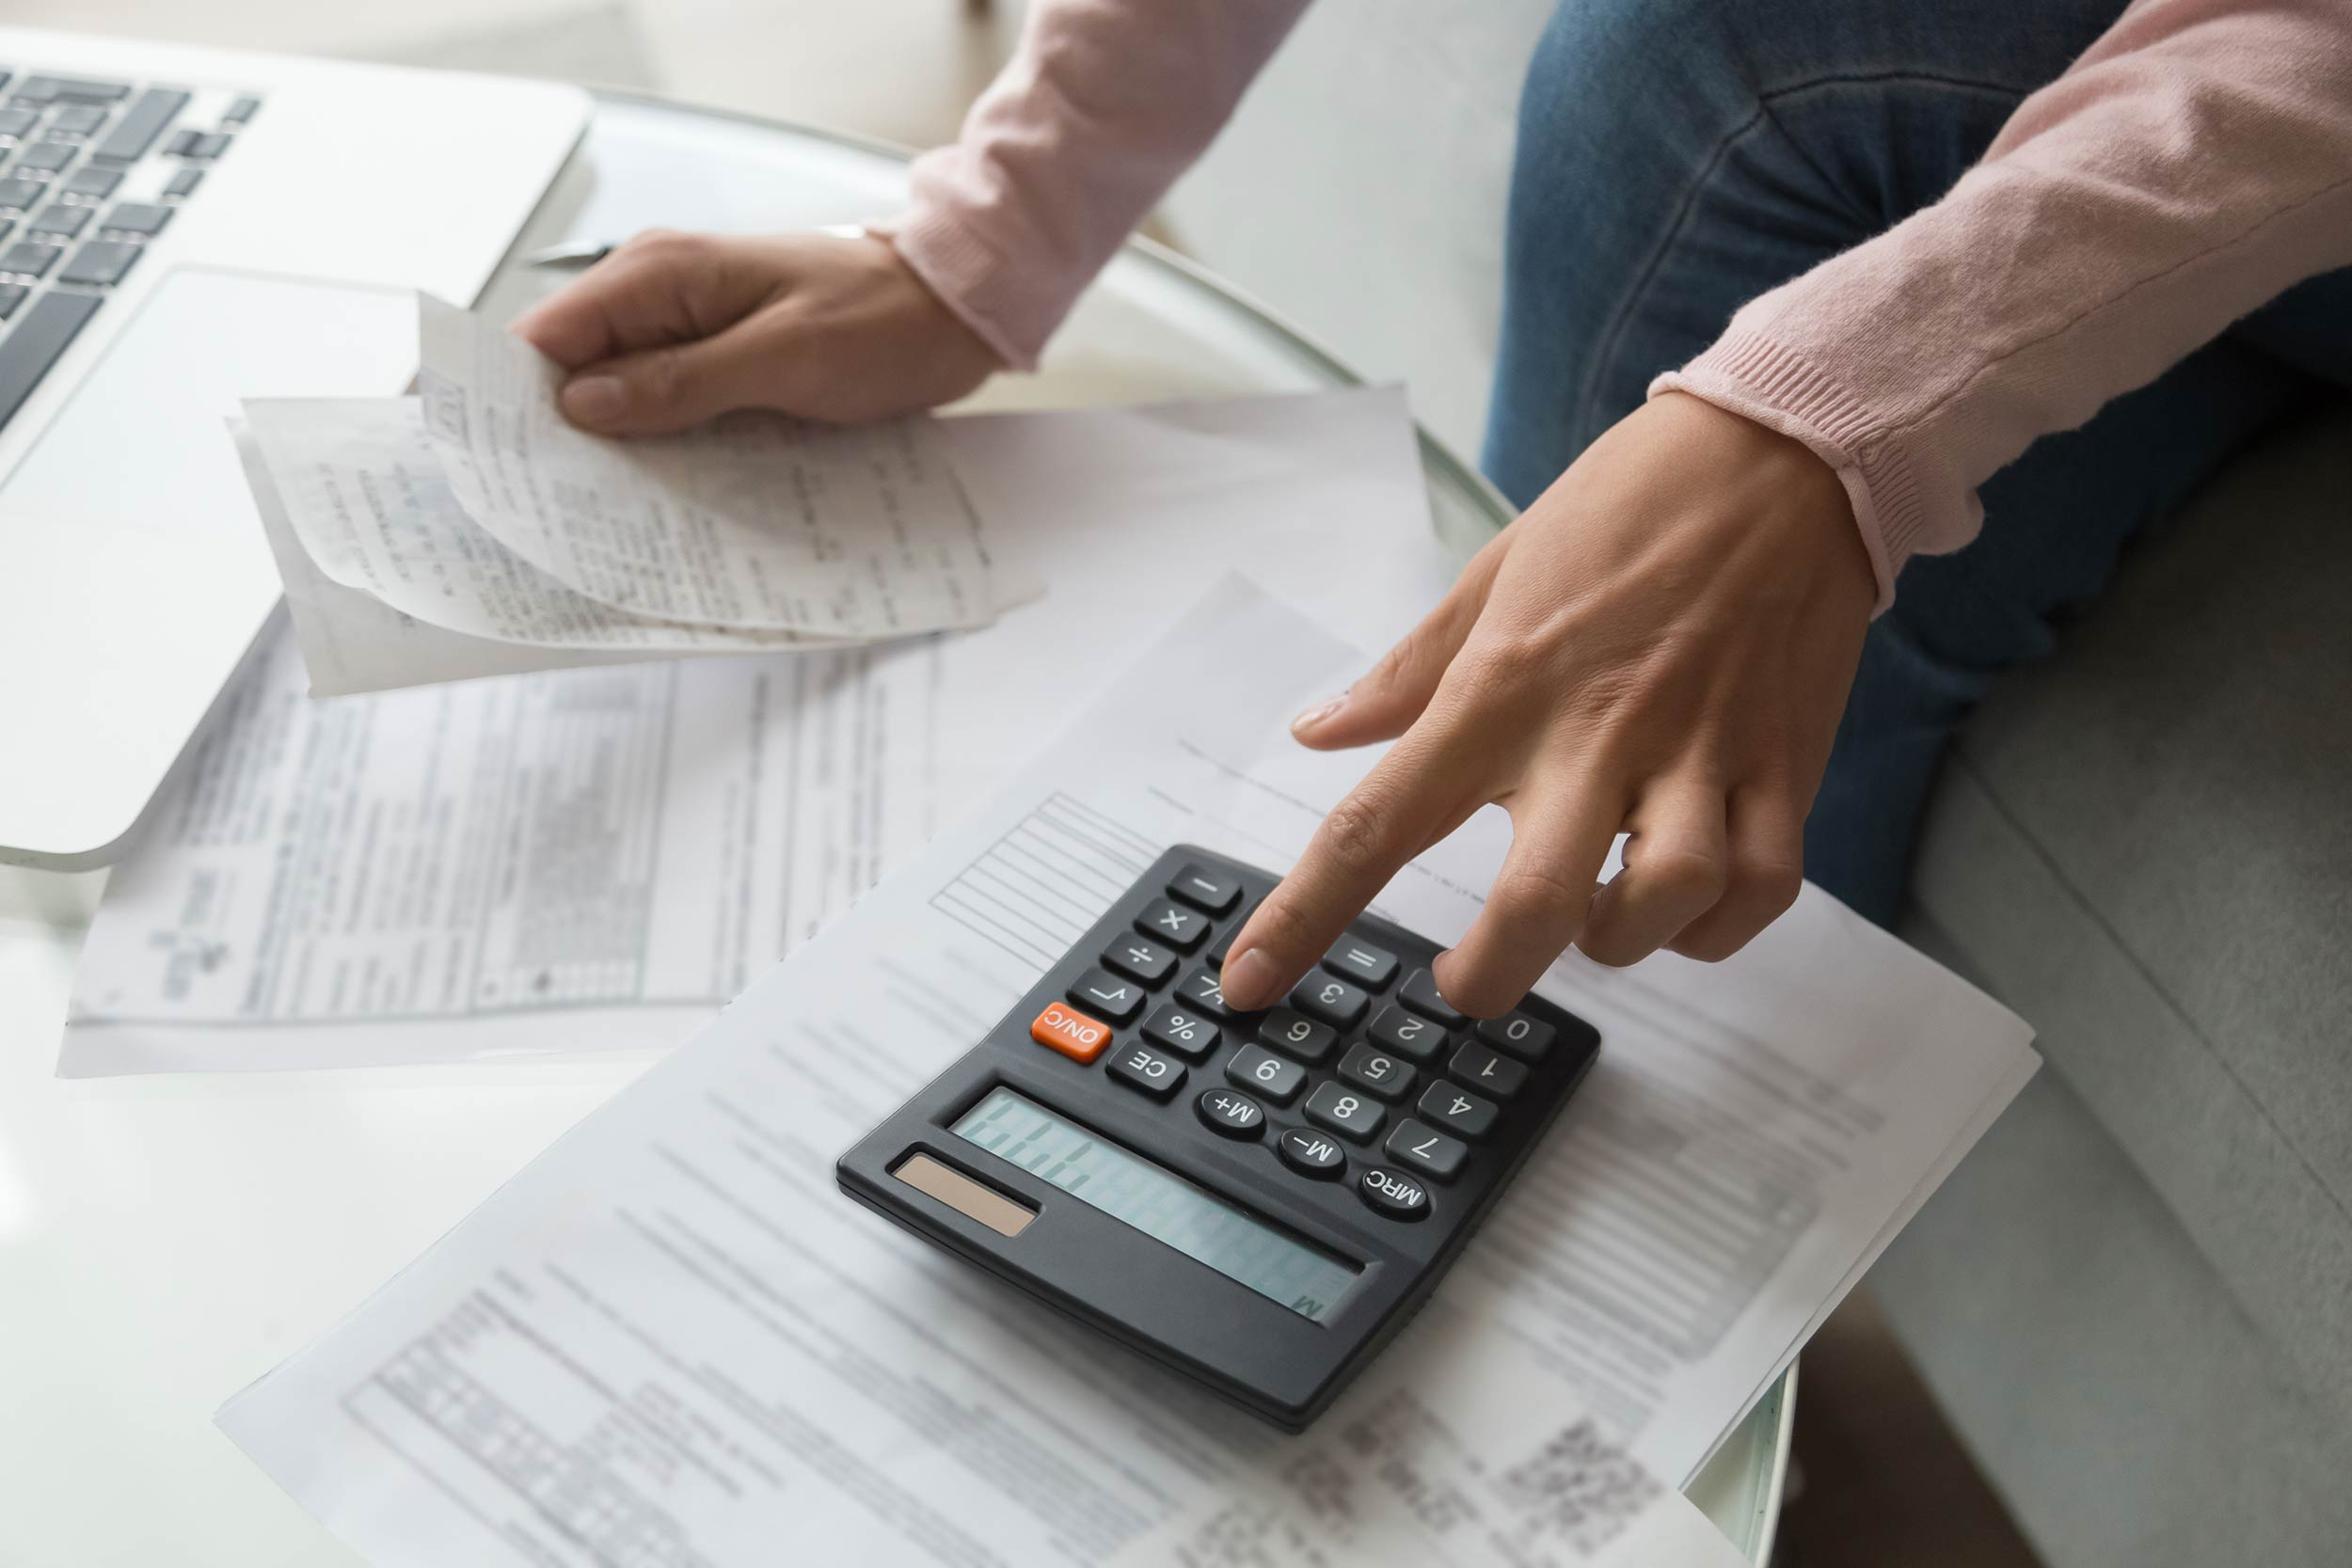 Bookkeeping at home with papers and calculator on table